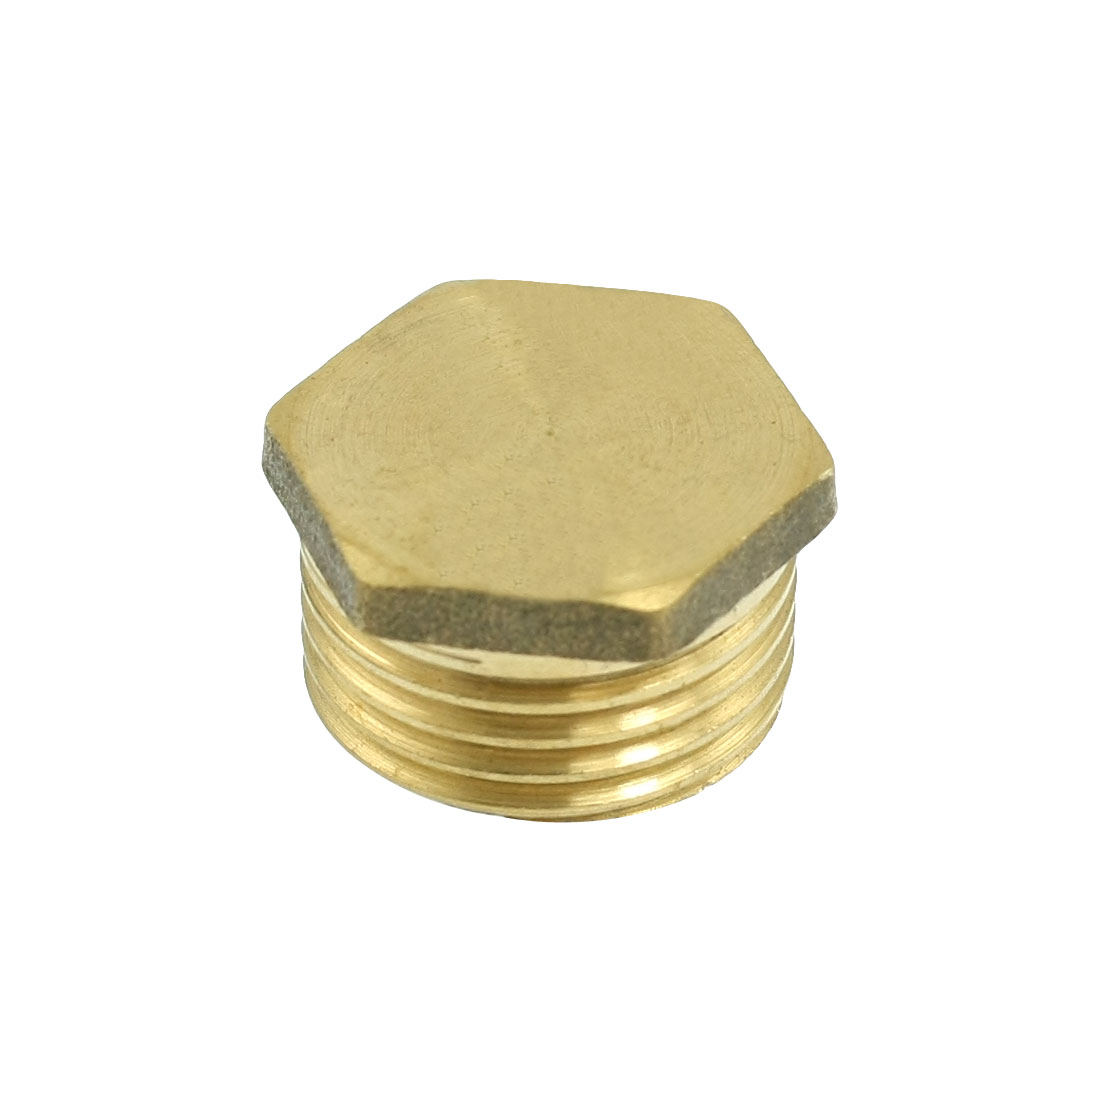 20mm Male Thread Pipe Reducer Brass Hex Head Bushing Connector